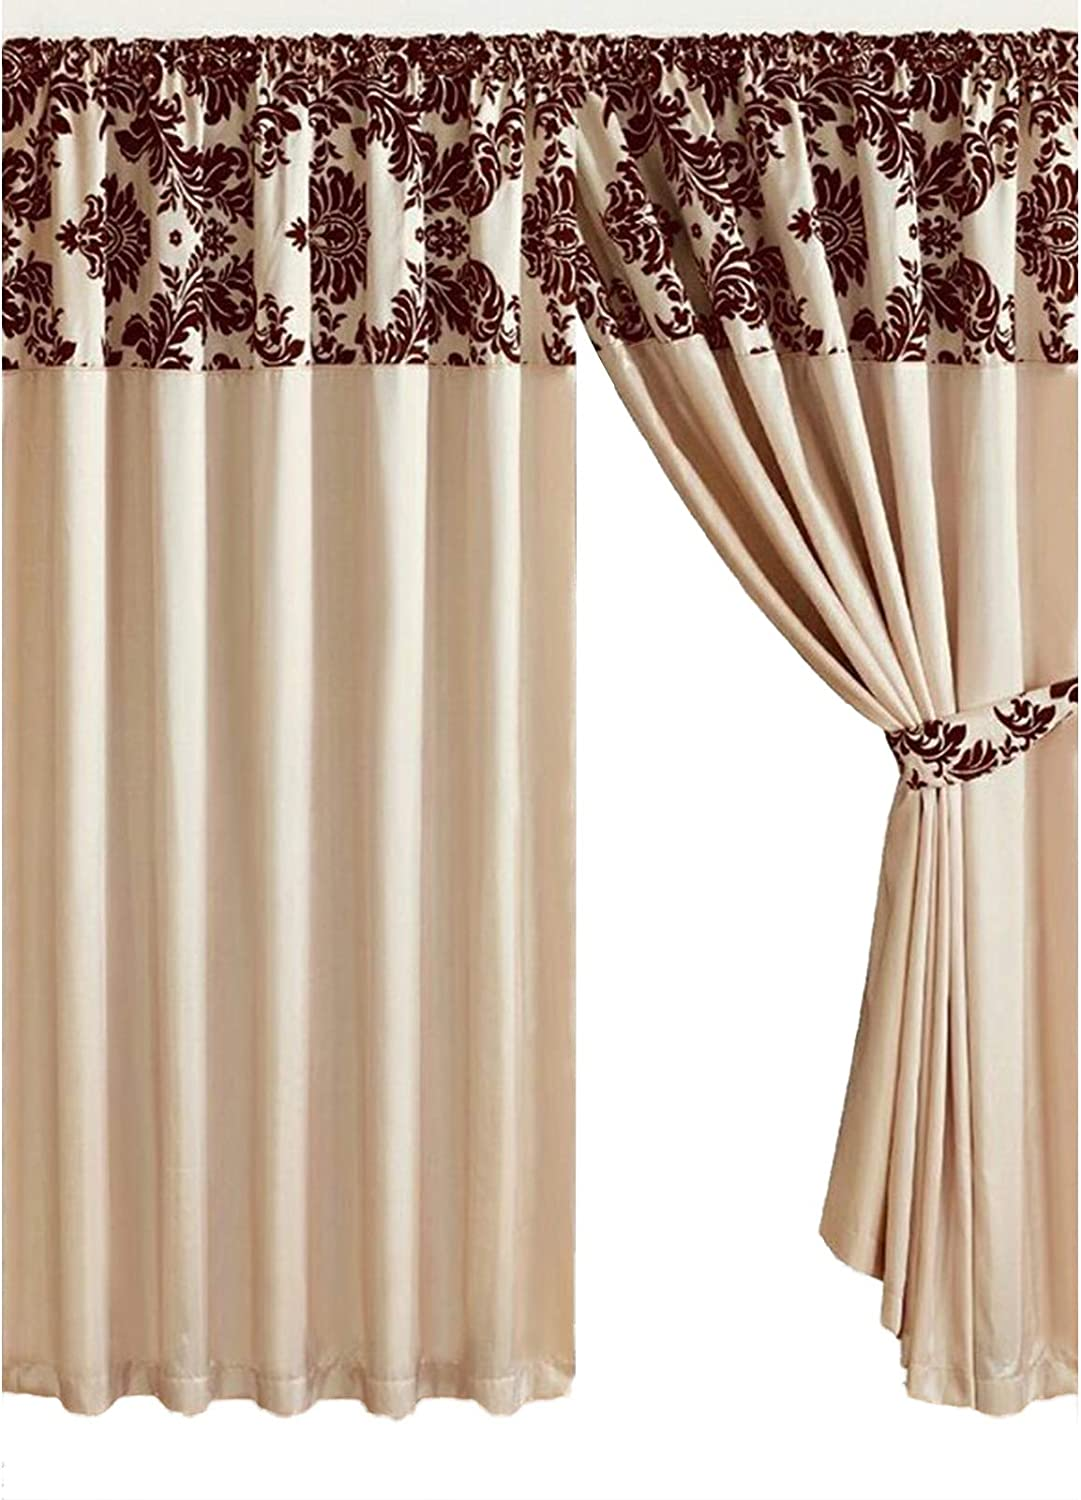 Half Flock Damask Pencil Pleat Curtains 90 X90 228x228cm Cream Coffee Amazon Co Uk Kitchen Home